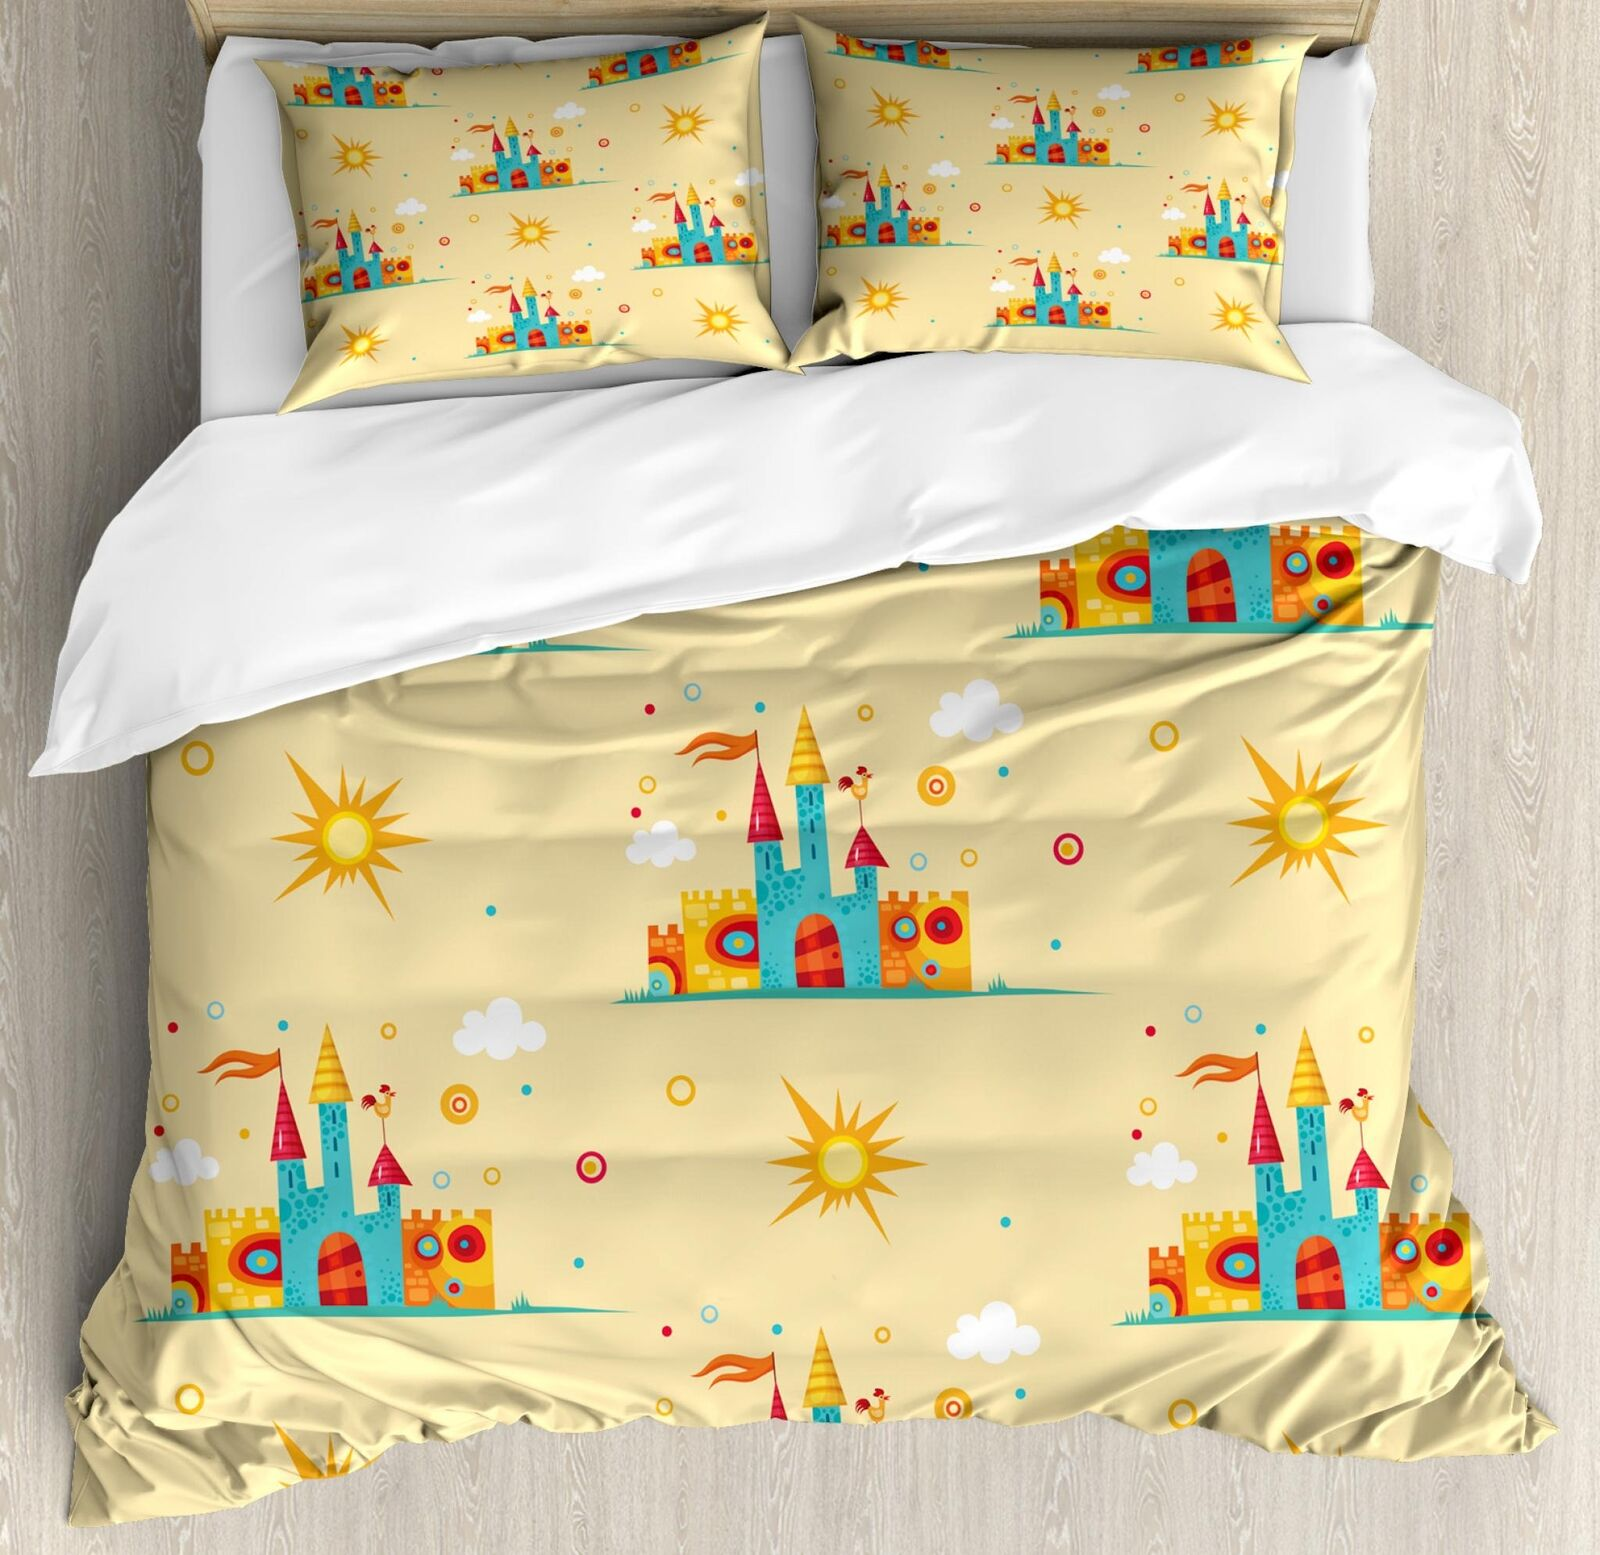 Fairy Tale Duvet Cover Set Twin Queen King Dimensiones with Pillow Shams Bedding